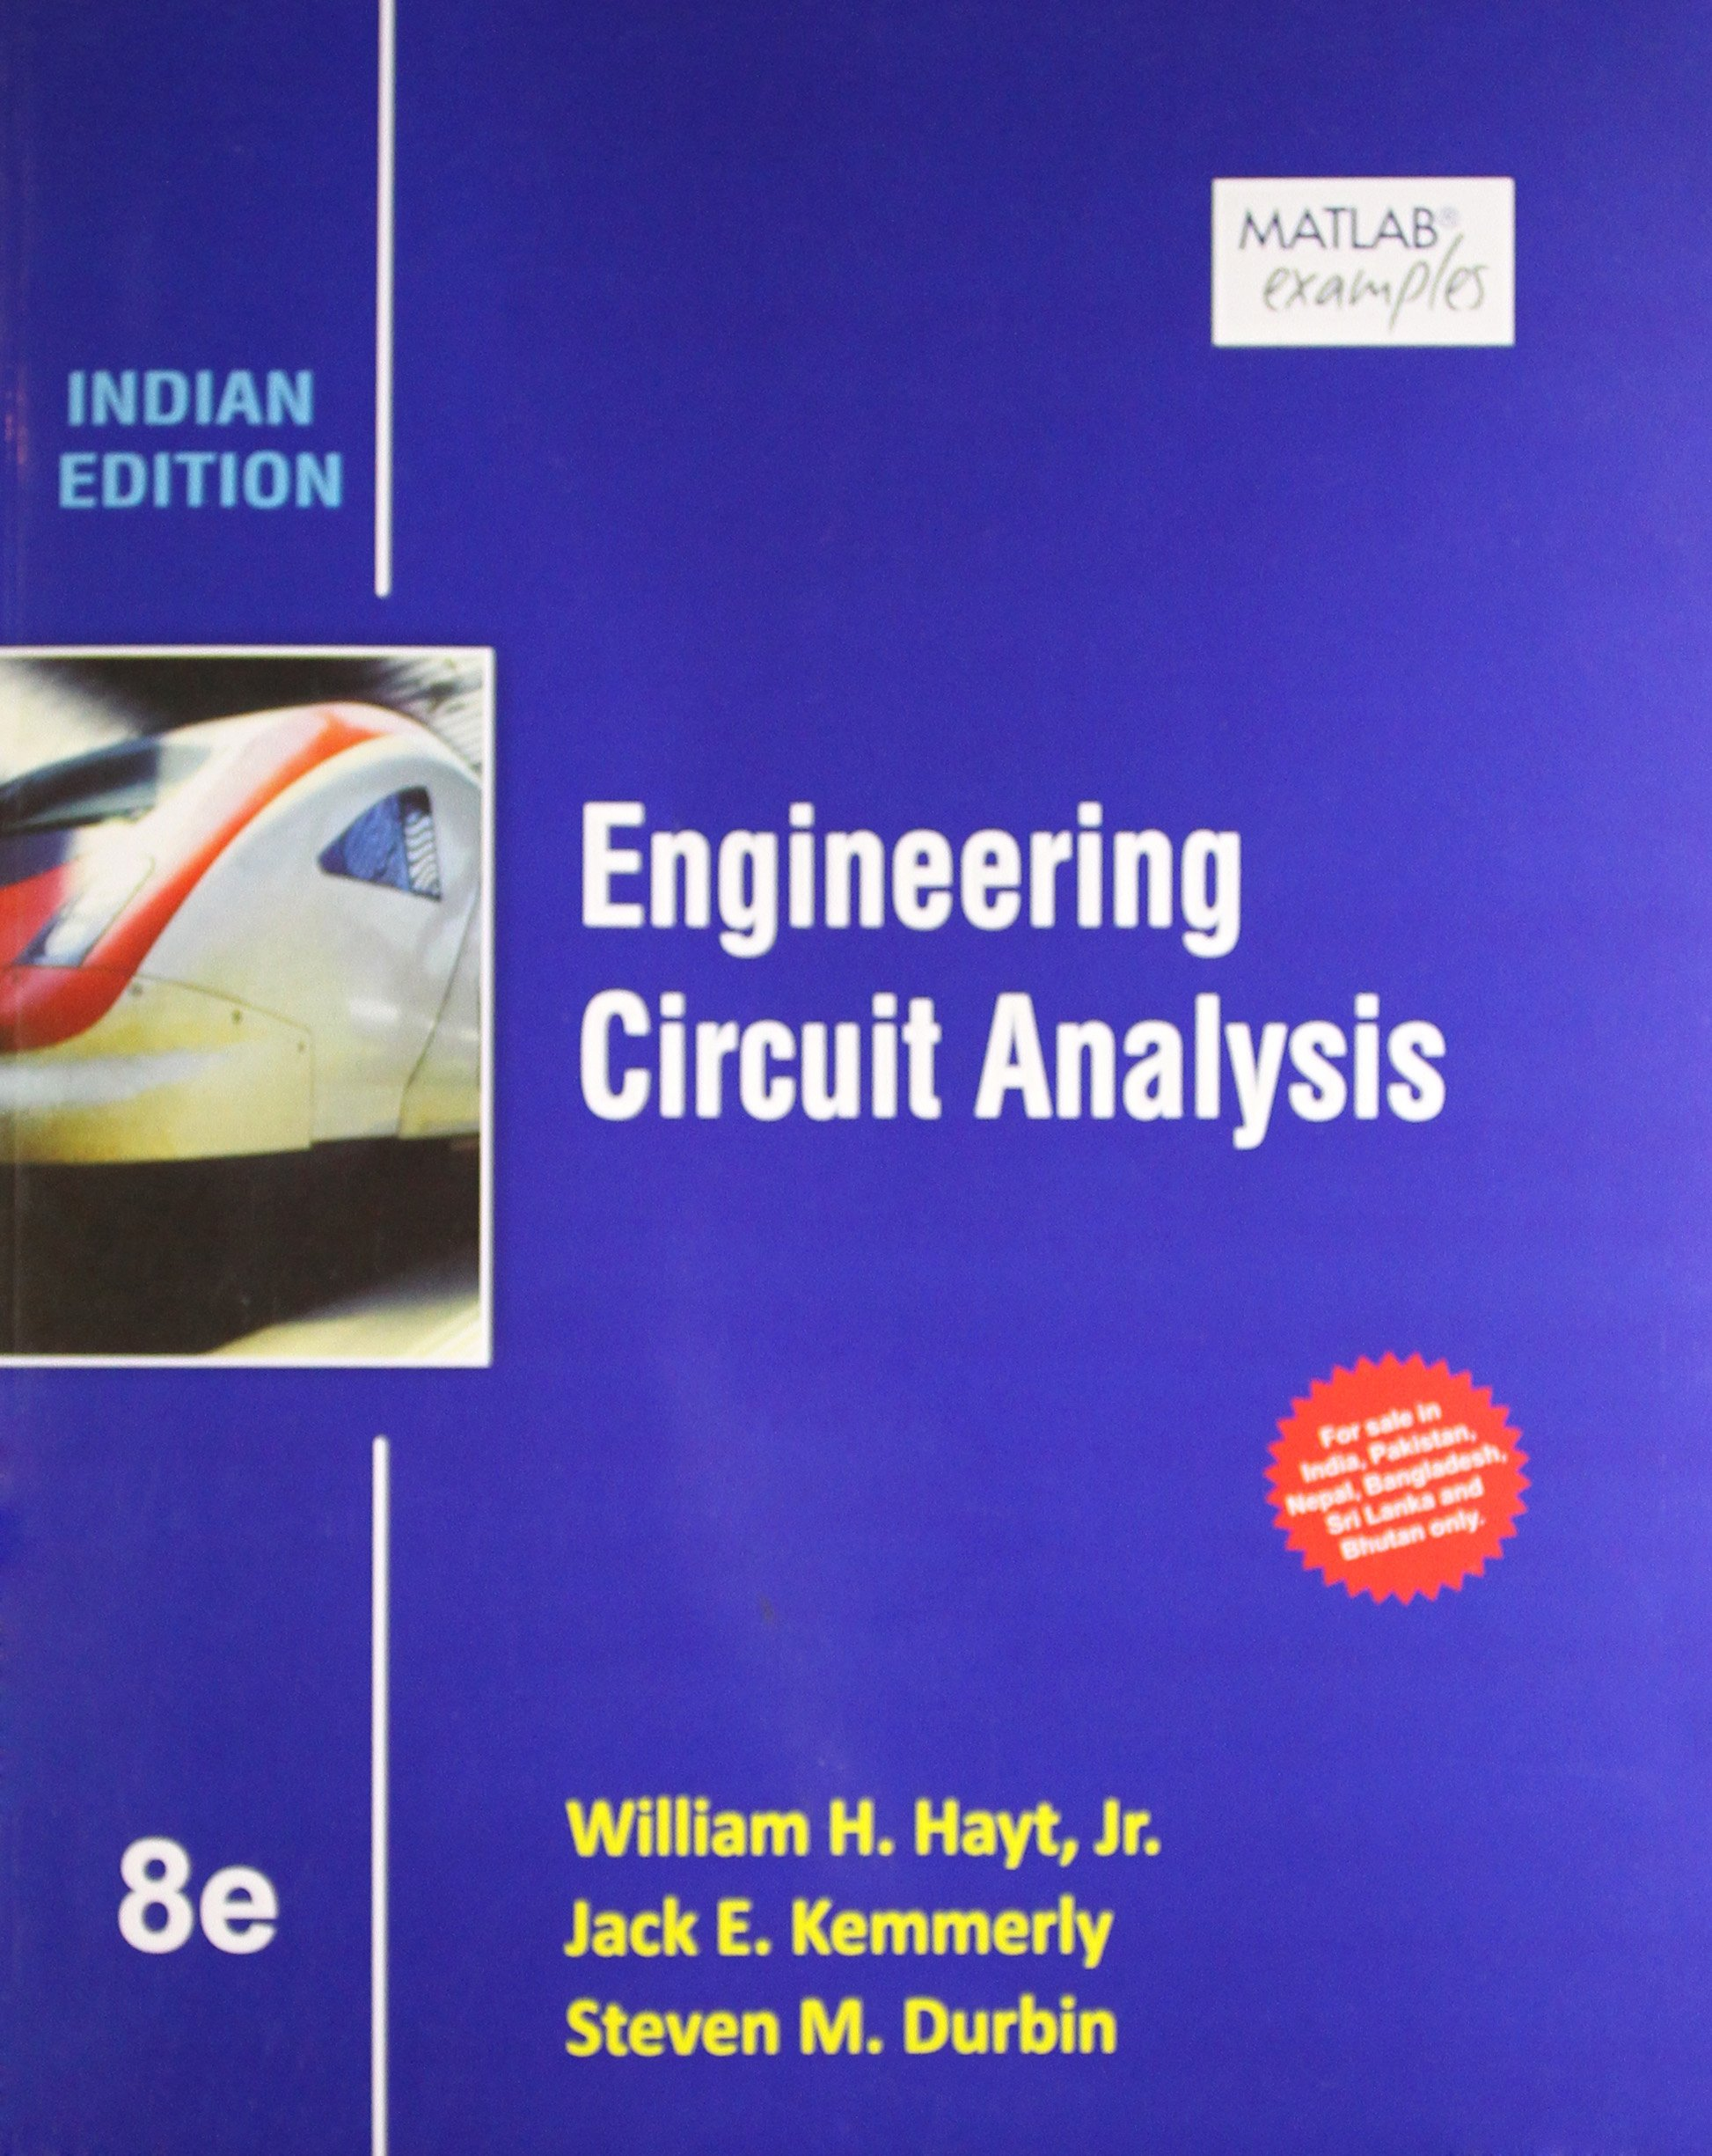 buy engineering circuit analysis book online at low prices in india